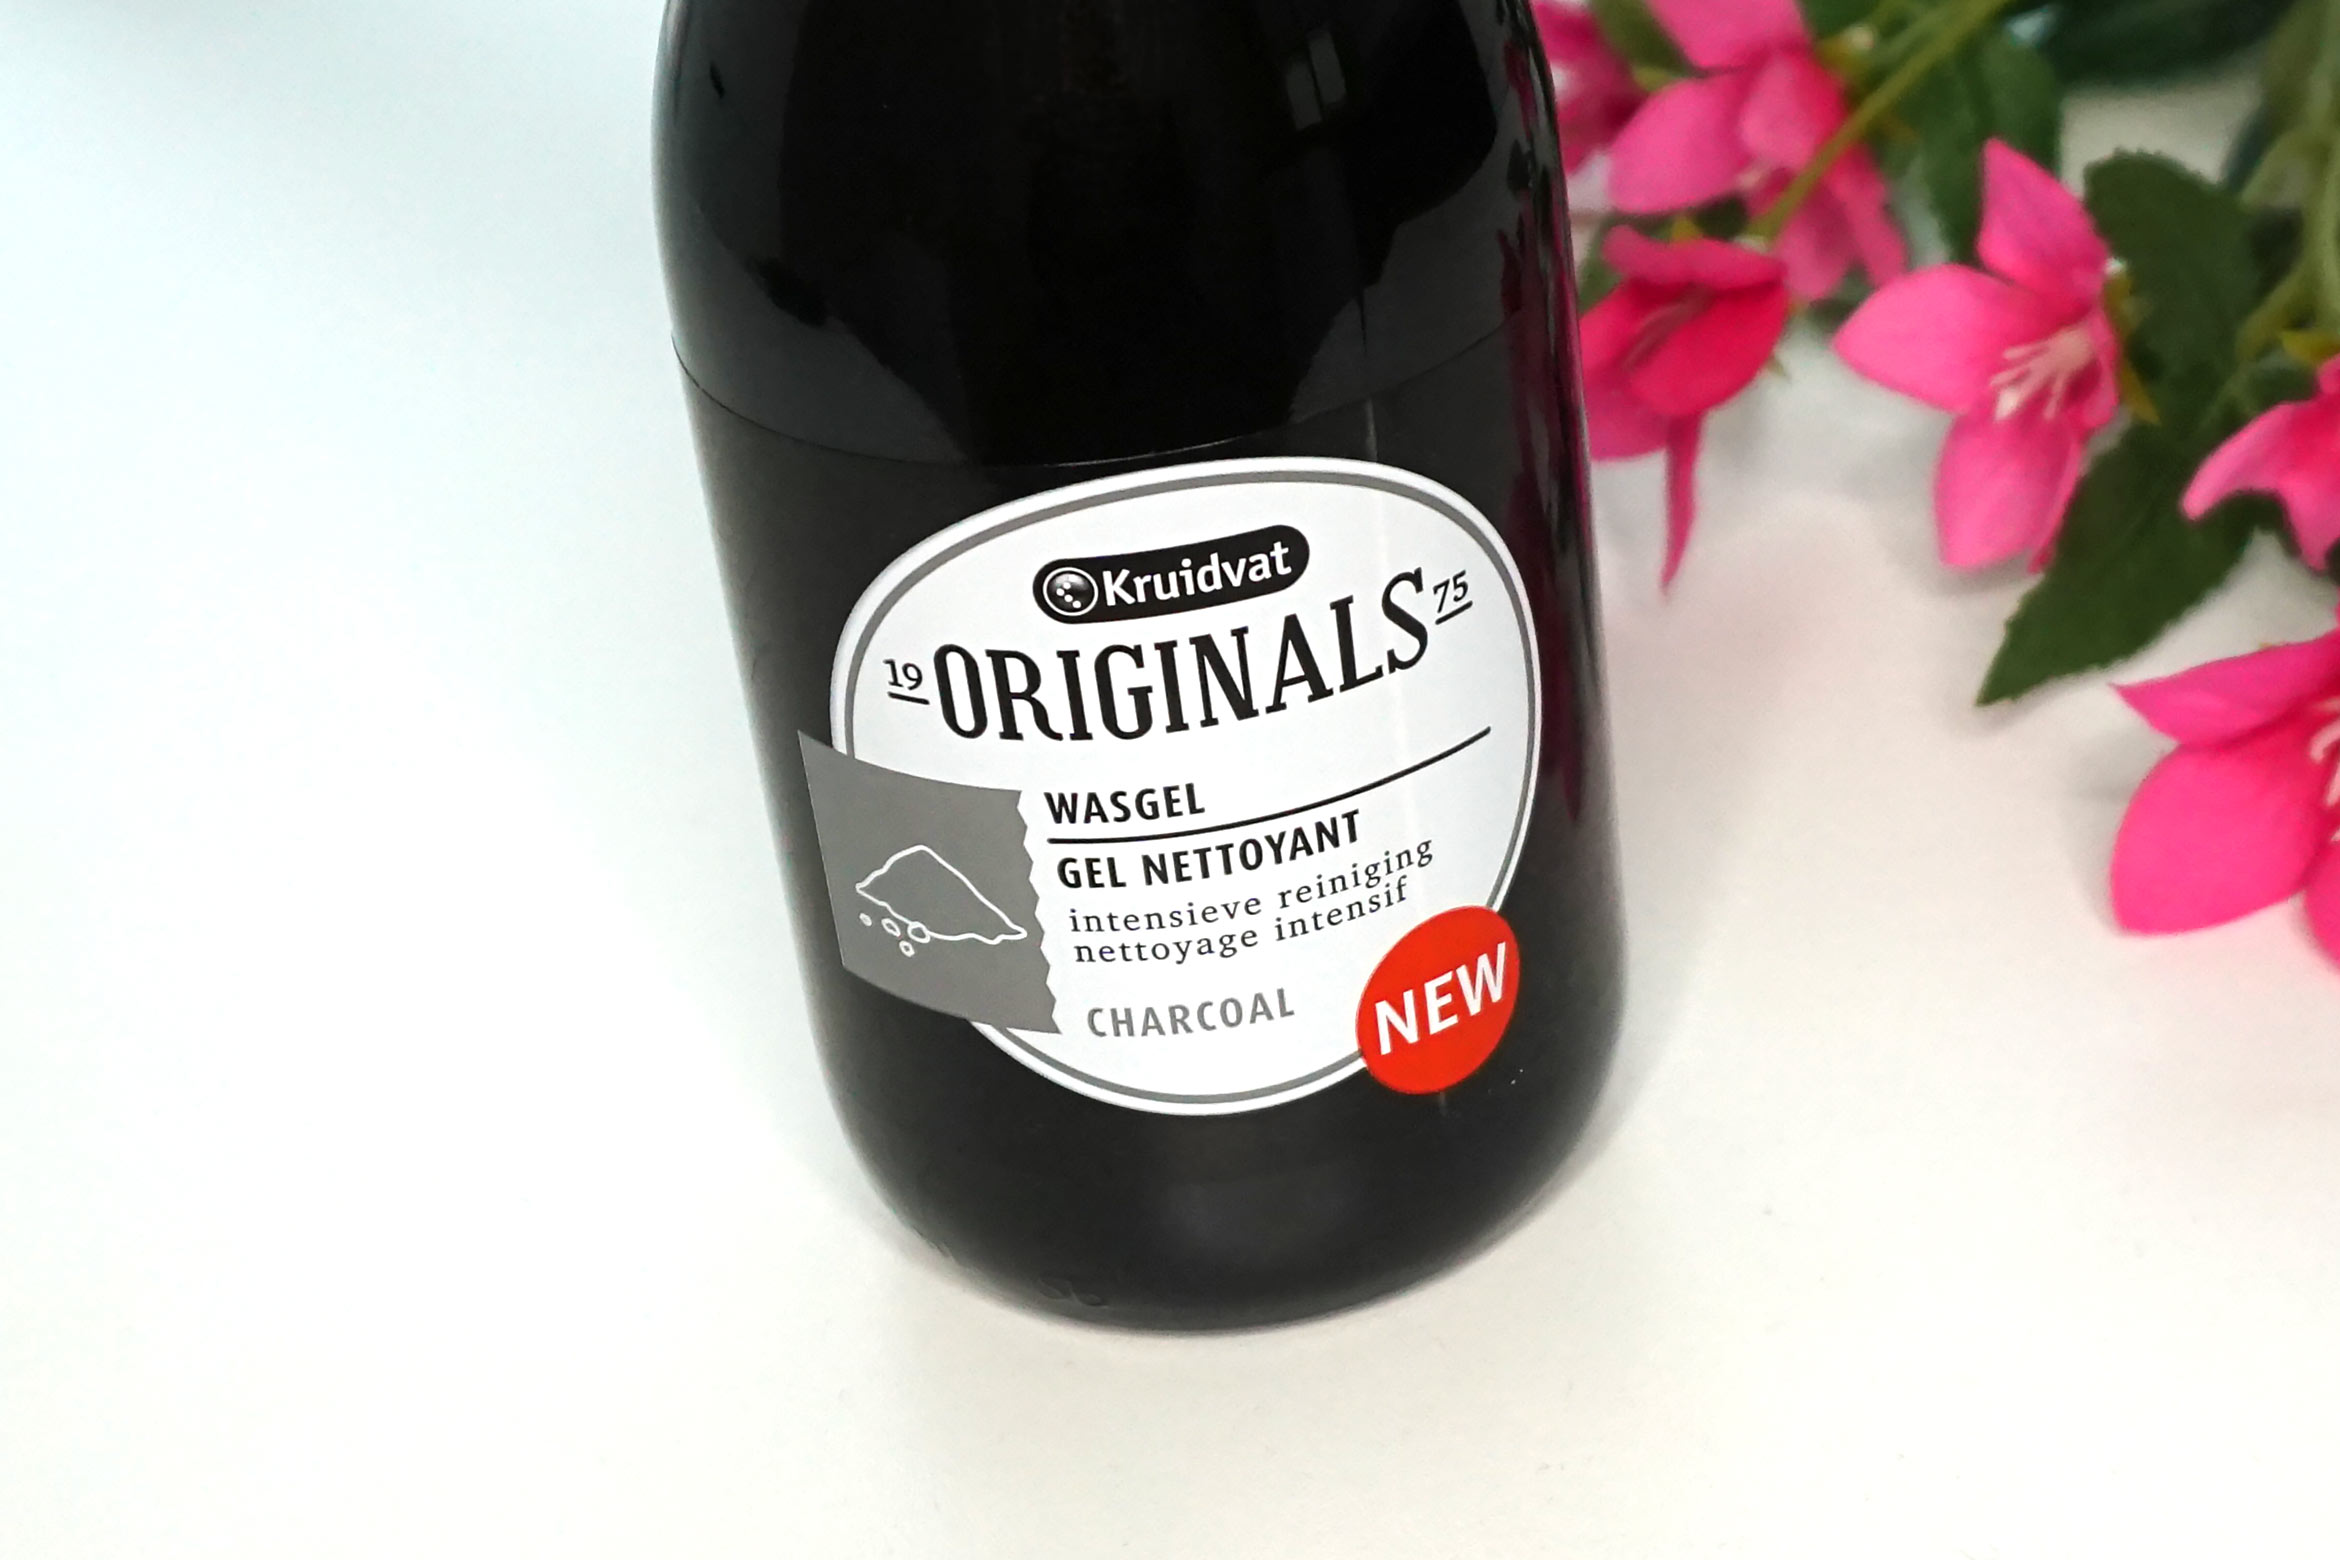 kruidvat-originals-charcoal-wasgel-review